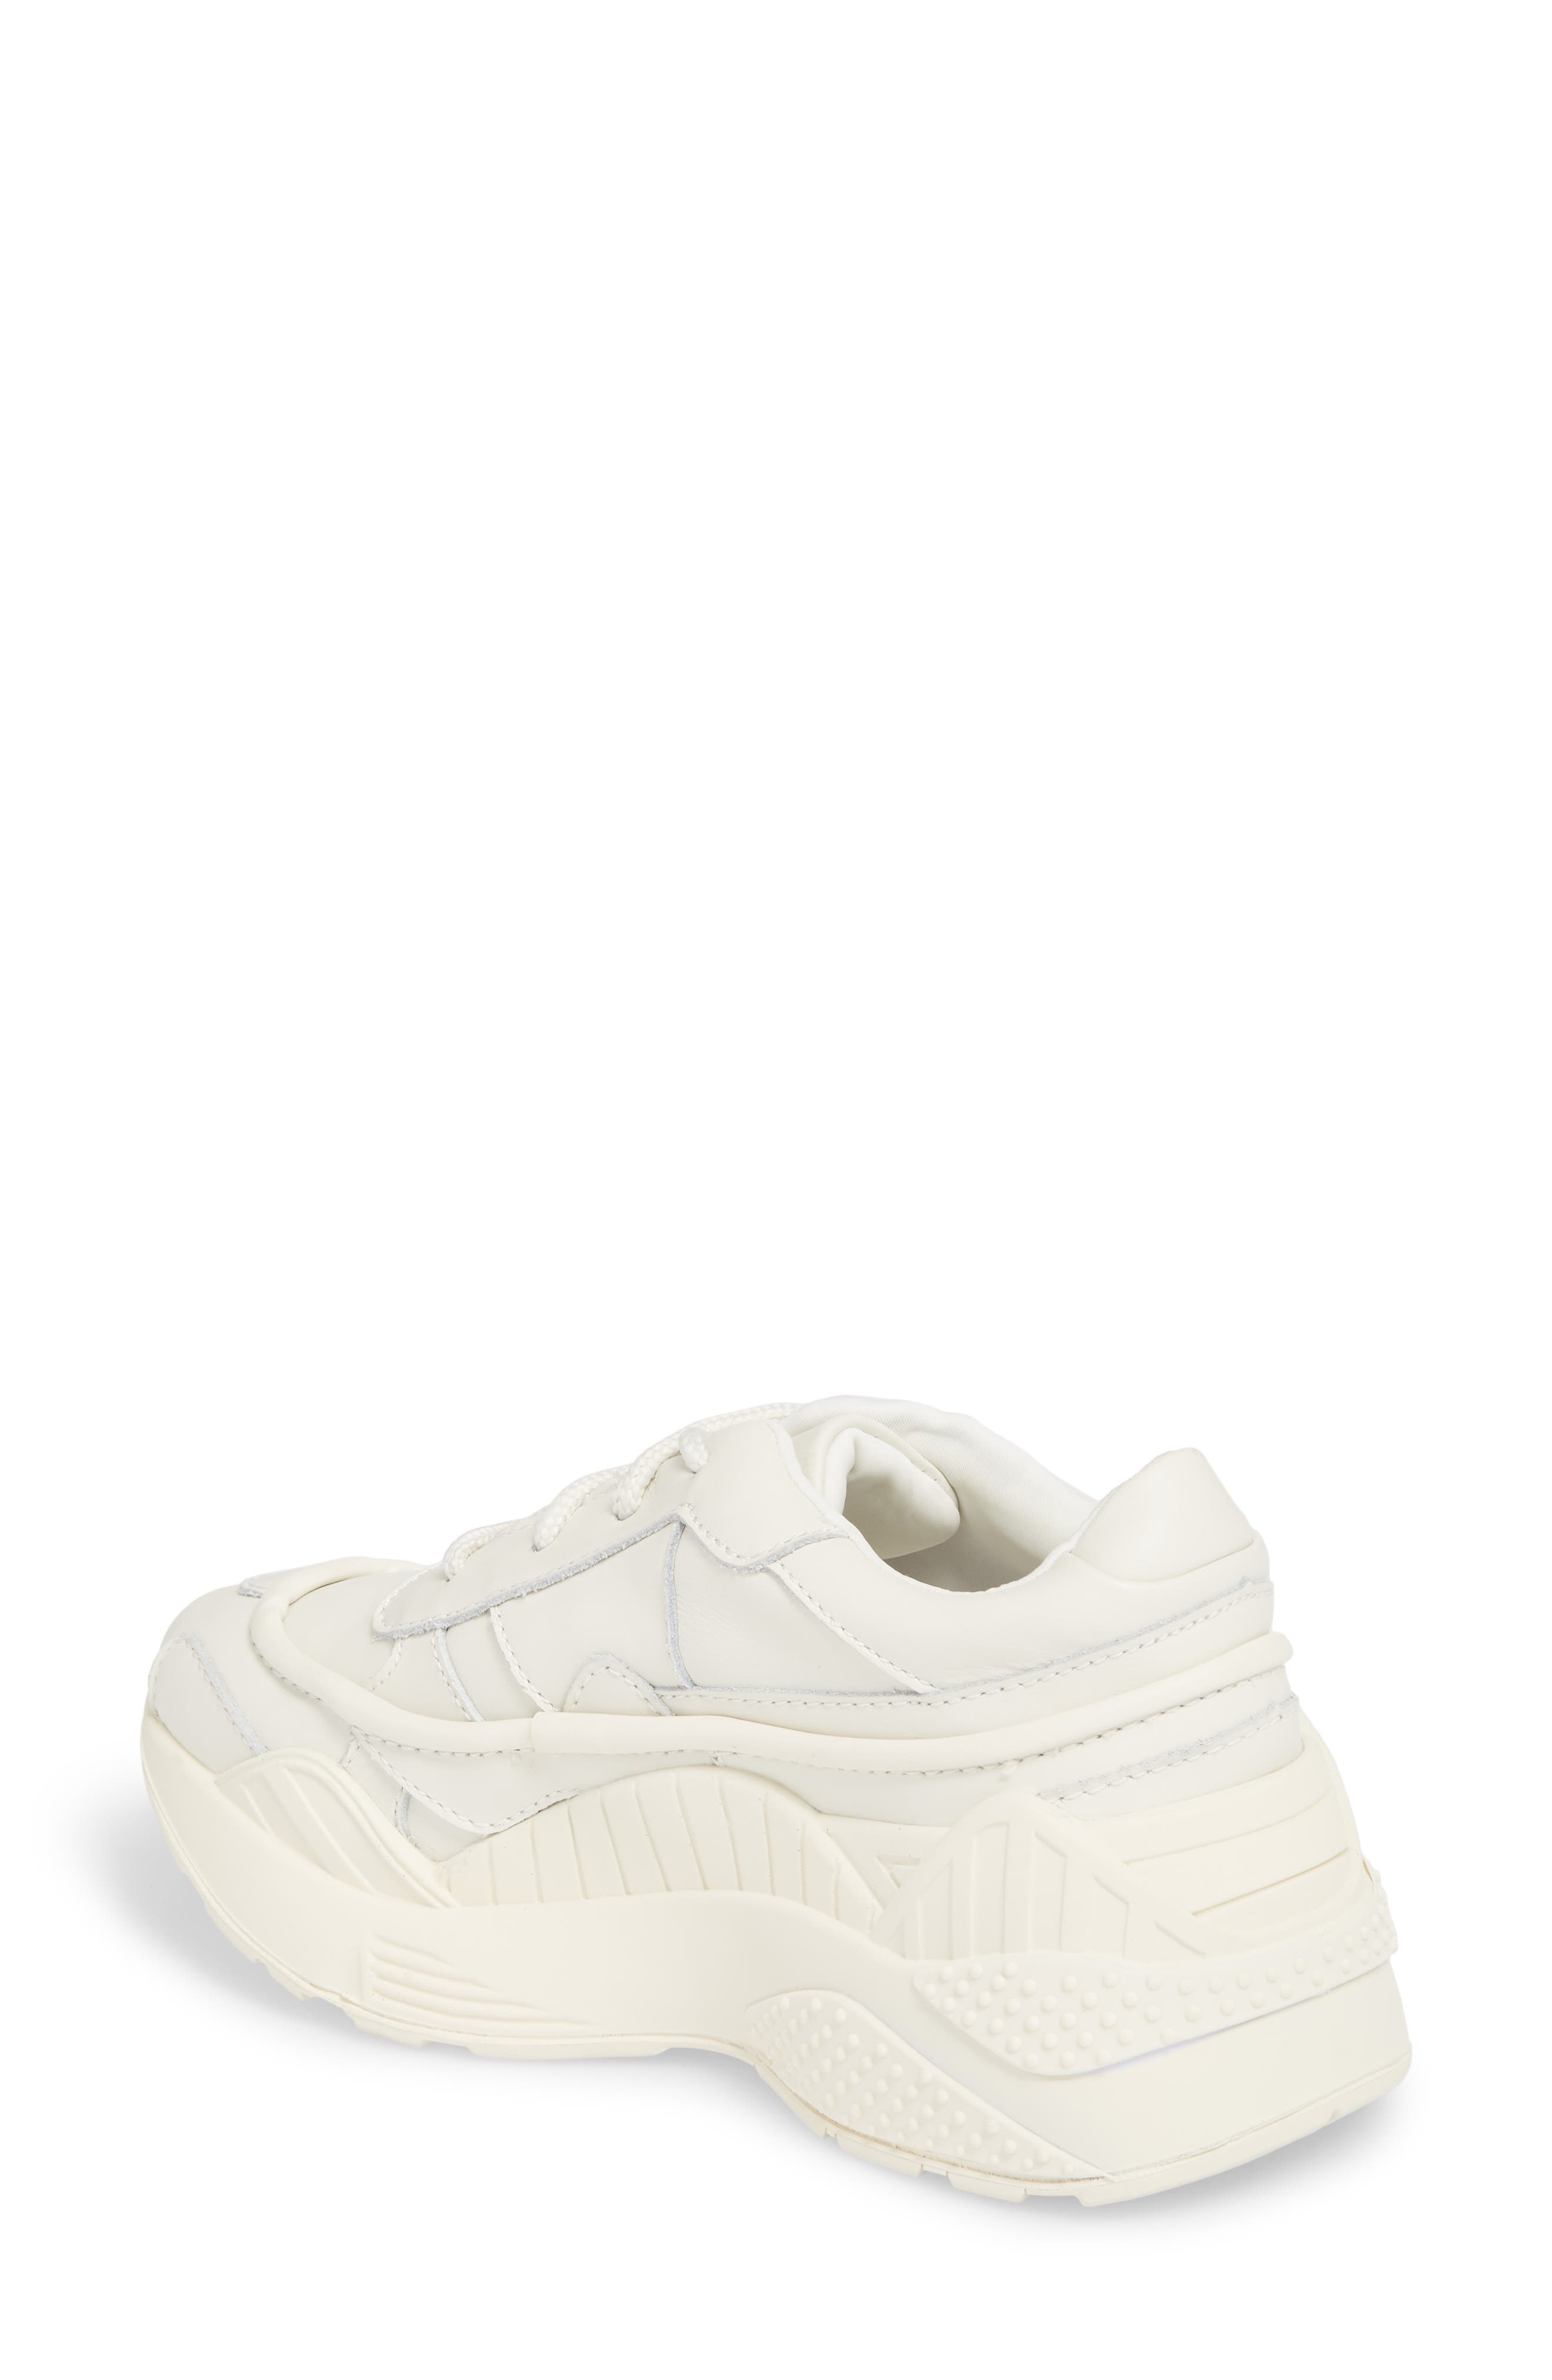 HMDI Platform Sneaker,                             Alternate thumbnail 2, color,                             WHITE LEATHER